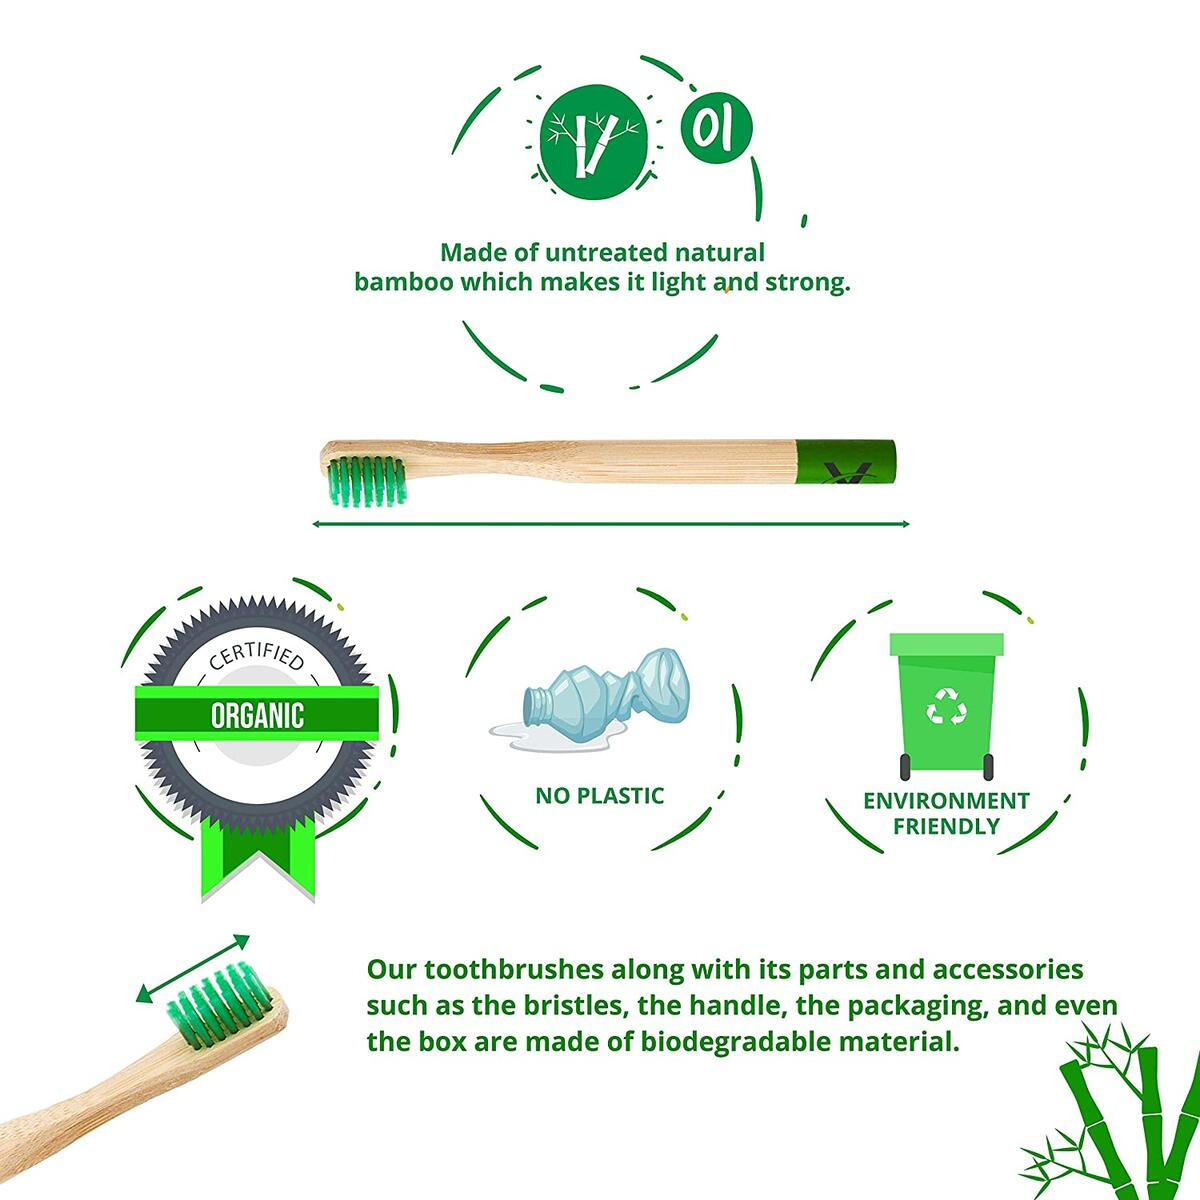 Vaireo Bamboo Eco Friendly Wooden Soft Kids Toothbrushes – Wood Handle Vegan Compostable Biodegradable Non Plastic Bristles Recyclable Sustainable Organic Natural Children Tooth Brush - Child Colorful 6 Pack